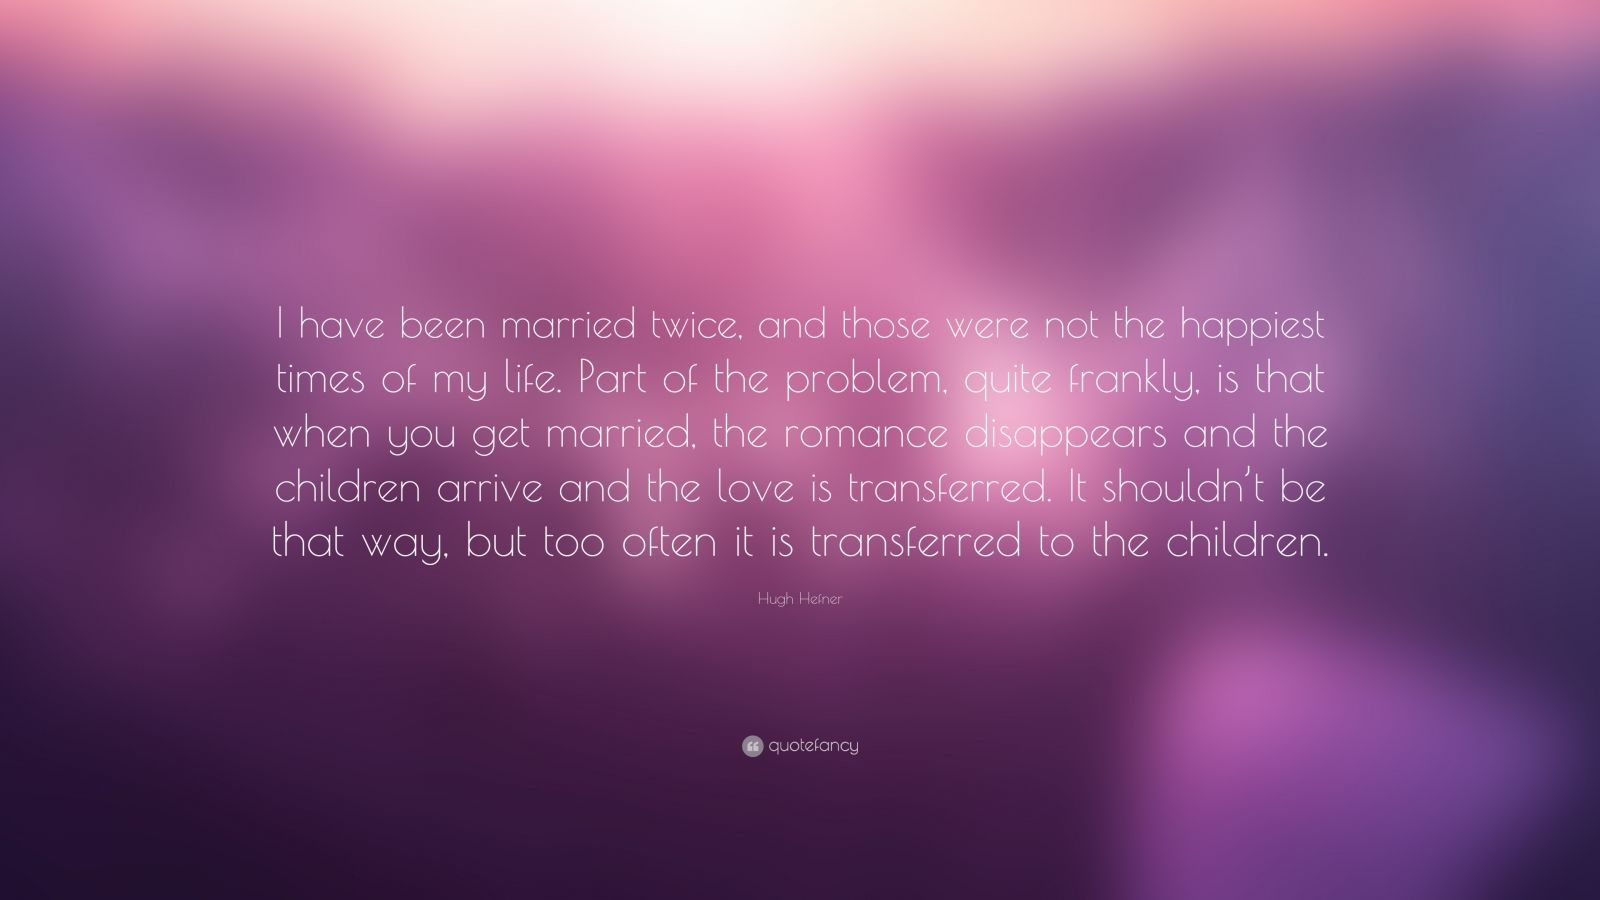 """Hugh Hefner Quote: """"I have been married twice, and those were not the happiest times of my life. Part of the problem, quite frankly, is that when you get married, the romance disappears and the children arrive and the love is transferred. It shouldn't be that way, but too often it is transferred to the children."""""""